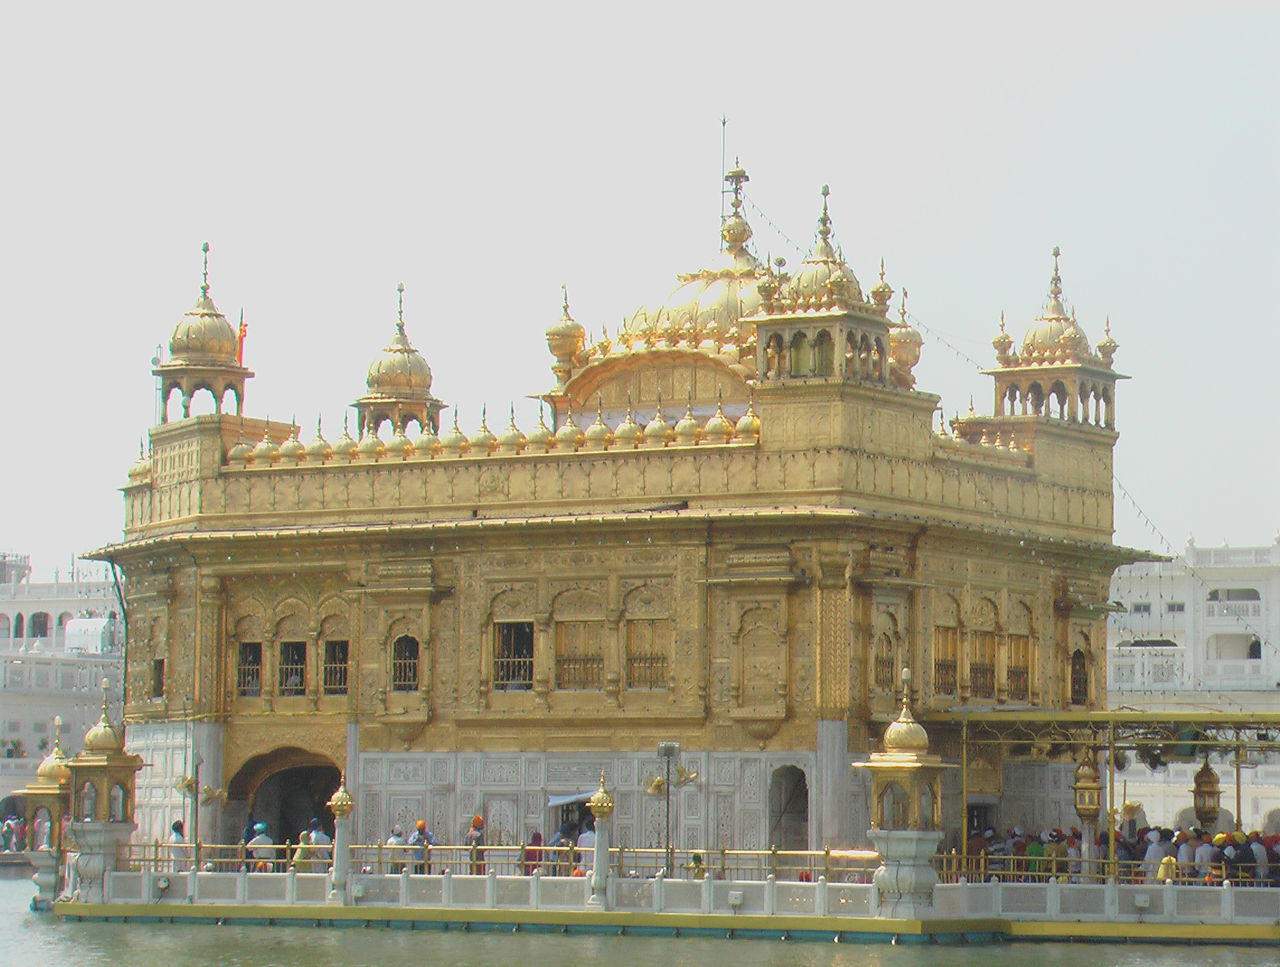 The vibe of this place is just amazing. Amristar Architecture Building Exterior Built Structure Gold Golden Temple India International Landmark Place Of Worship Punjab Spirituality Tourism